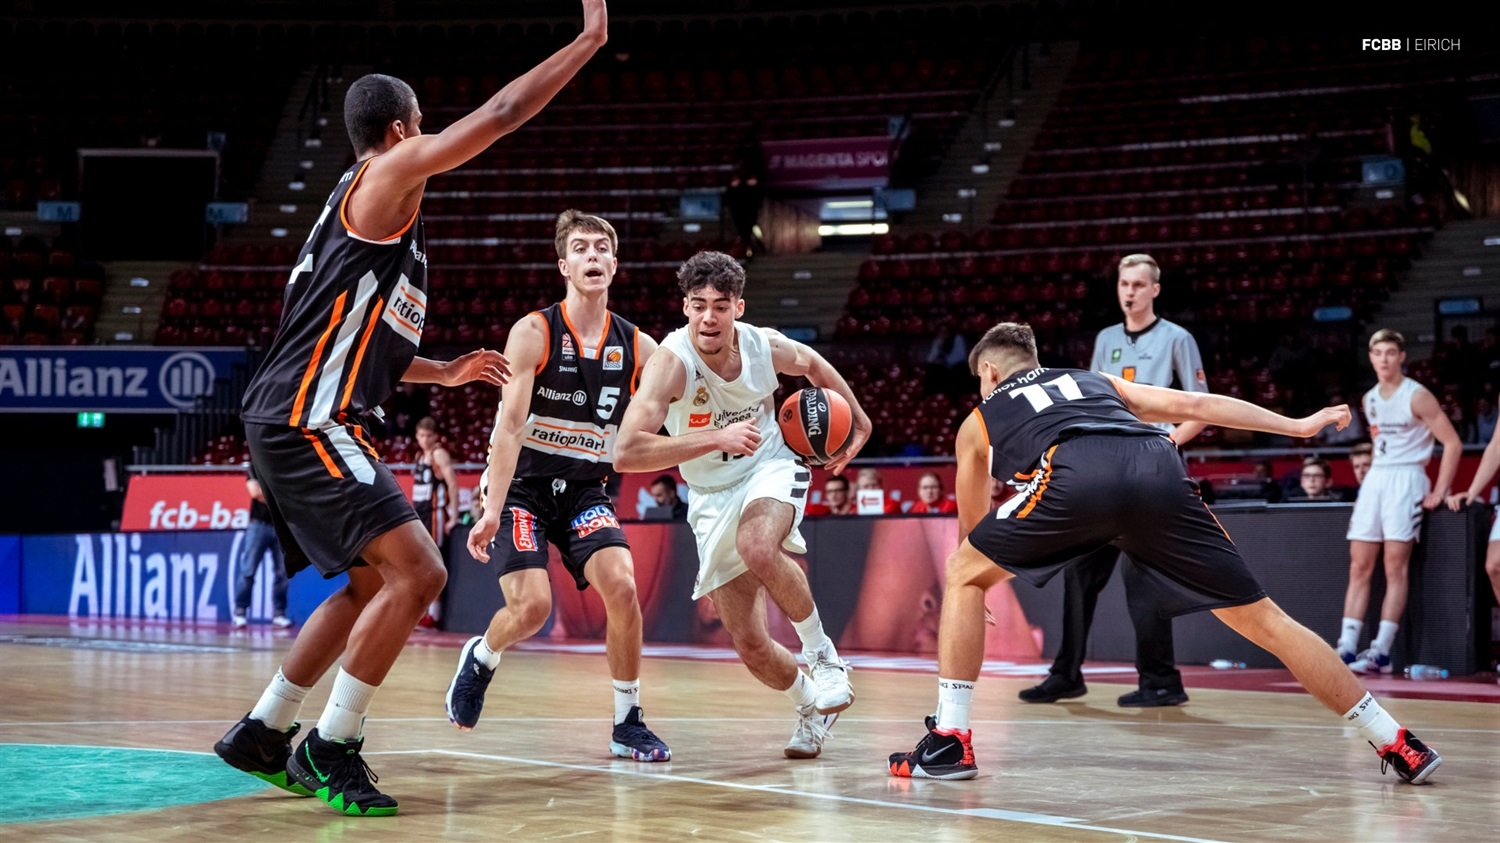 Jorge Mejias - U18 Real Madrid - ANGT Munich 2019 (photo FCBB - Eirich) JT18